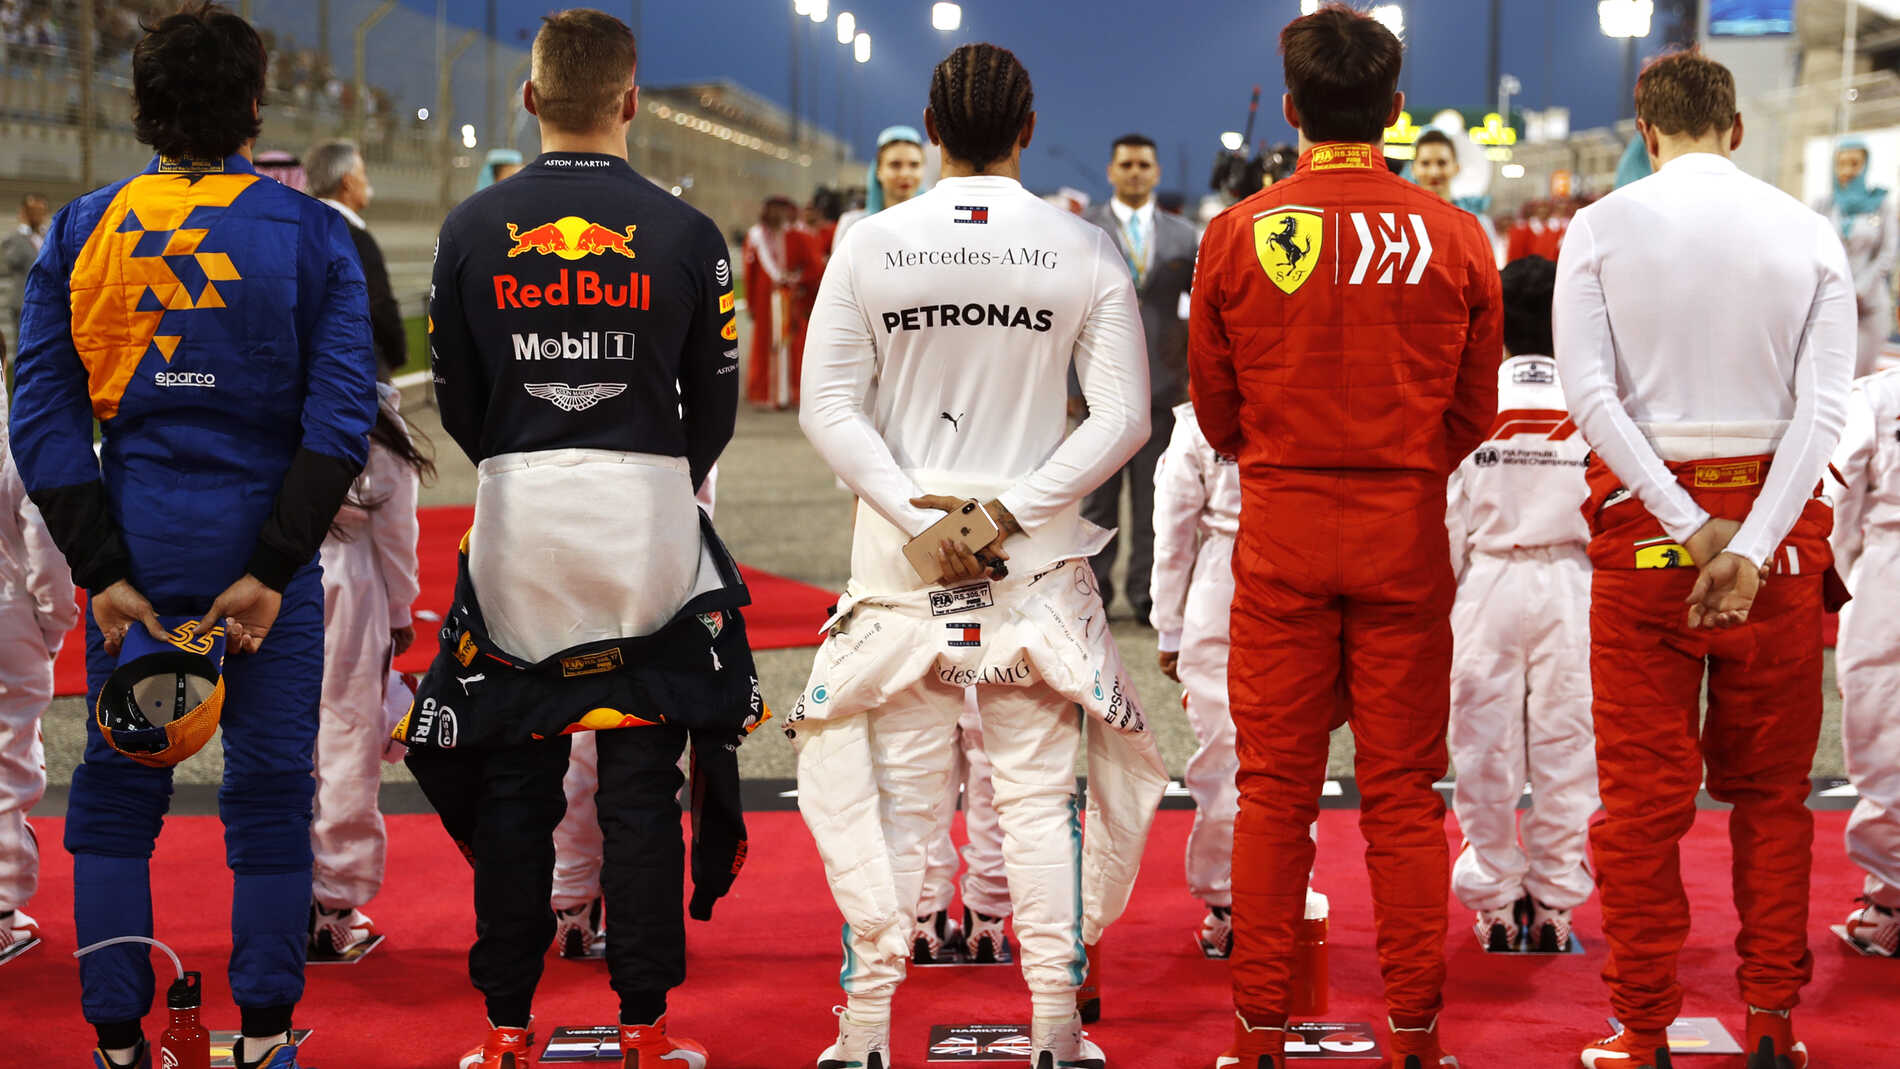 Best F1 Drivers 2019 The Top 10 F1 Drivers Of 2019 As Chosen By The Drivers Formula 1